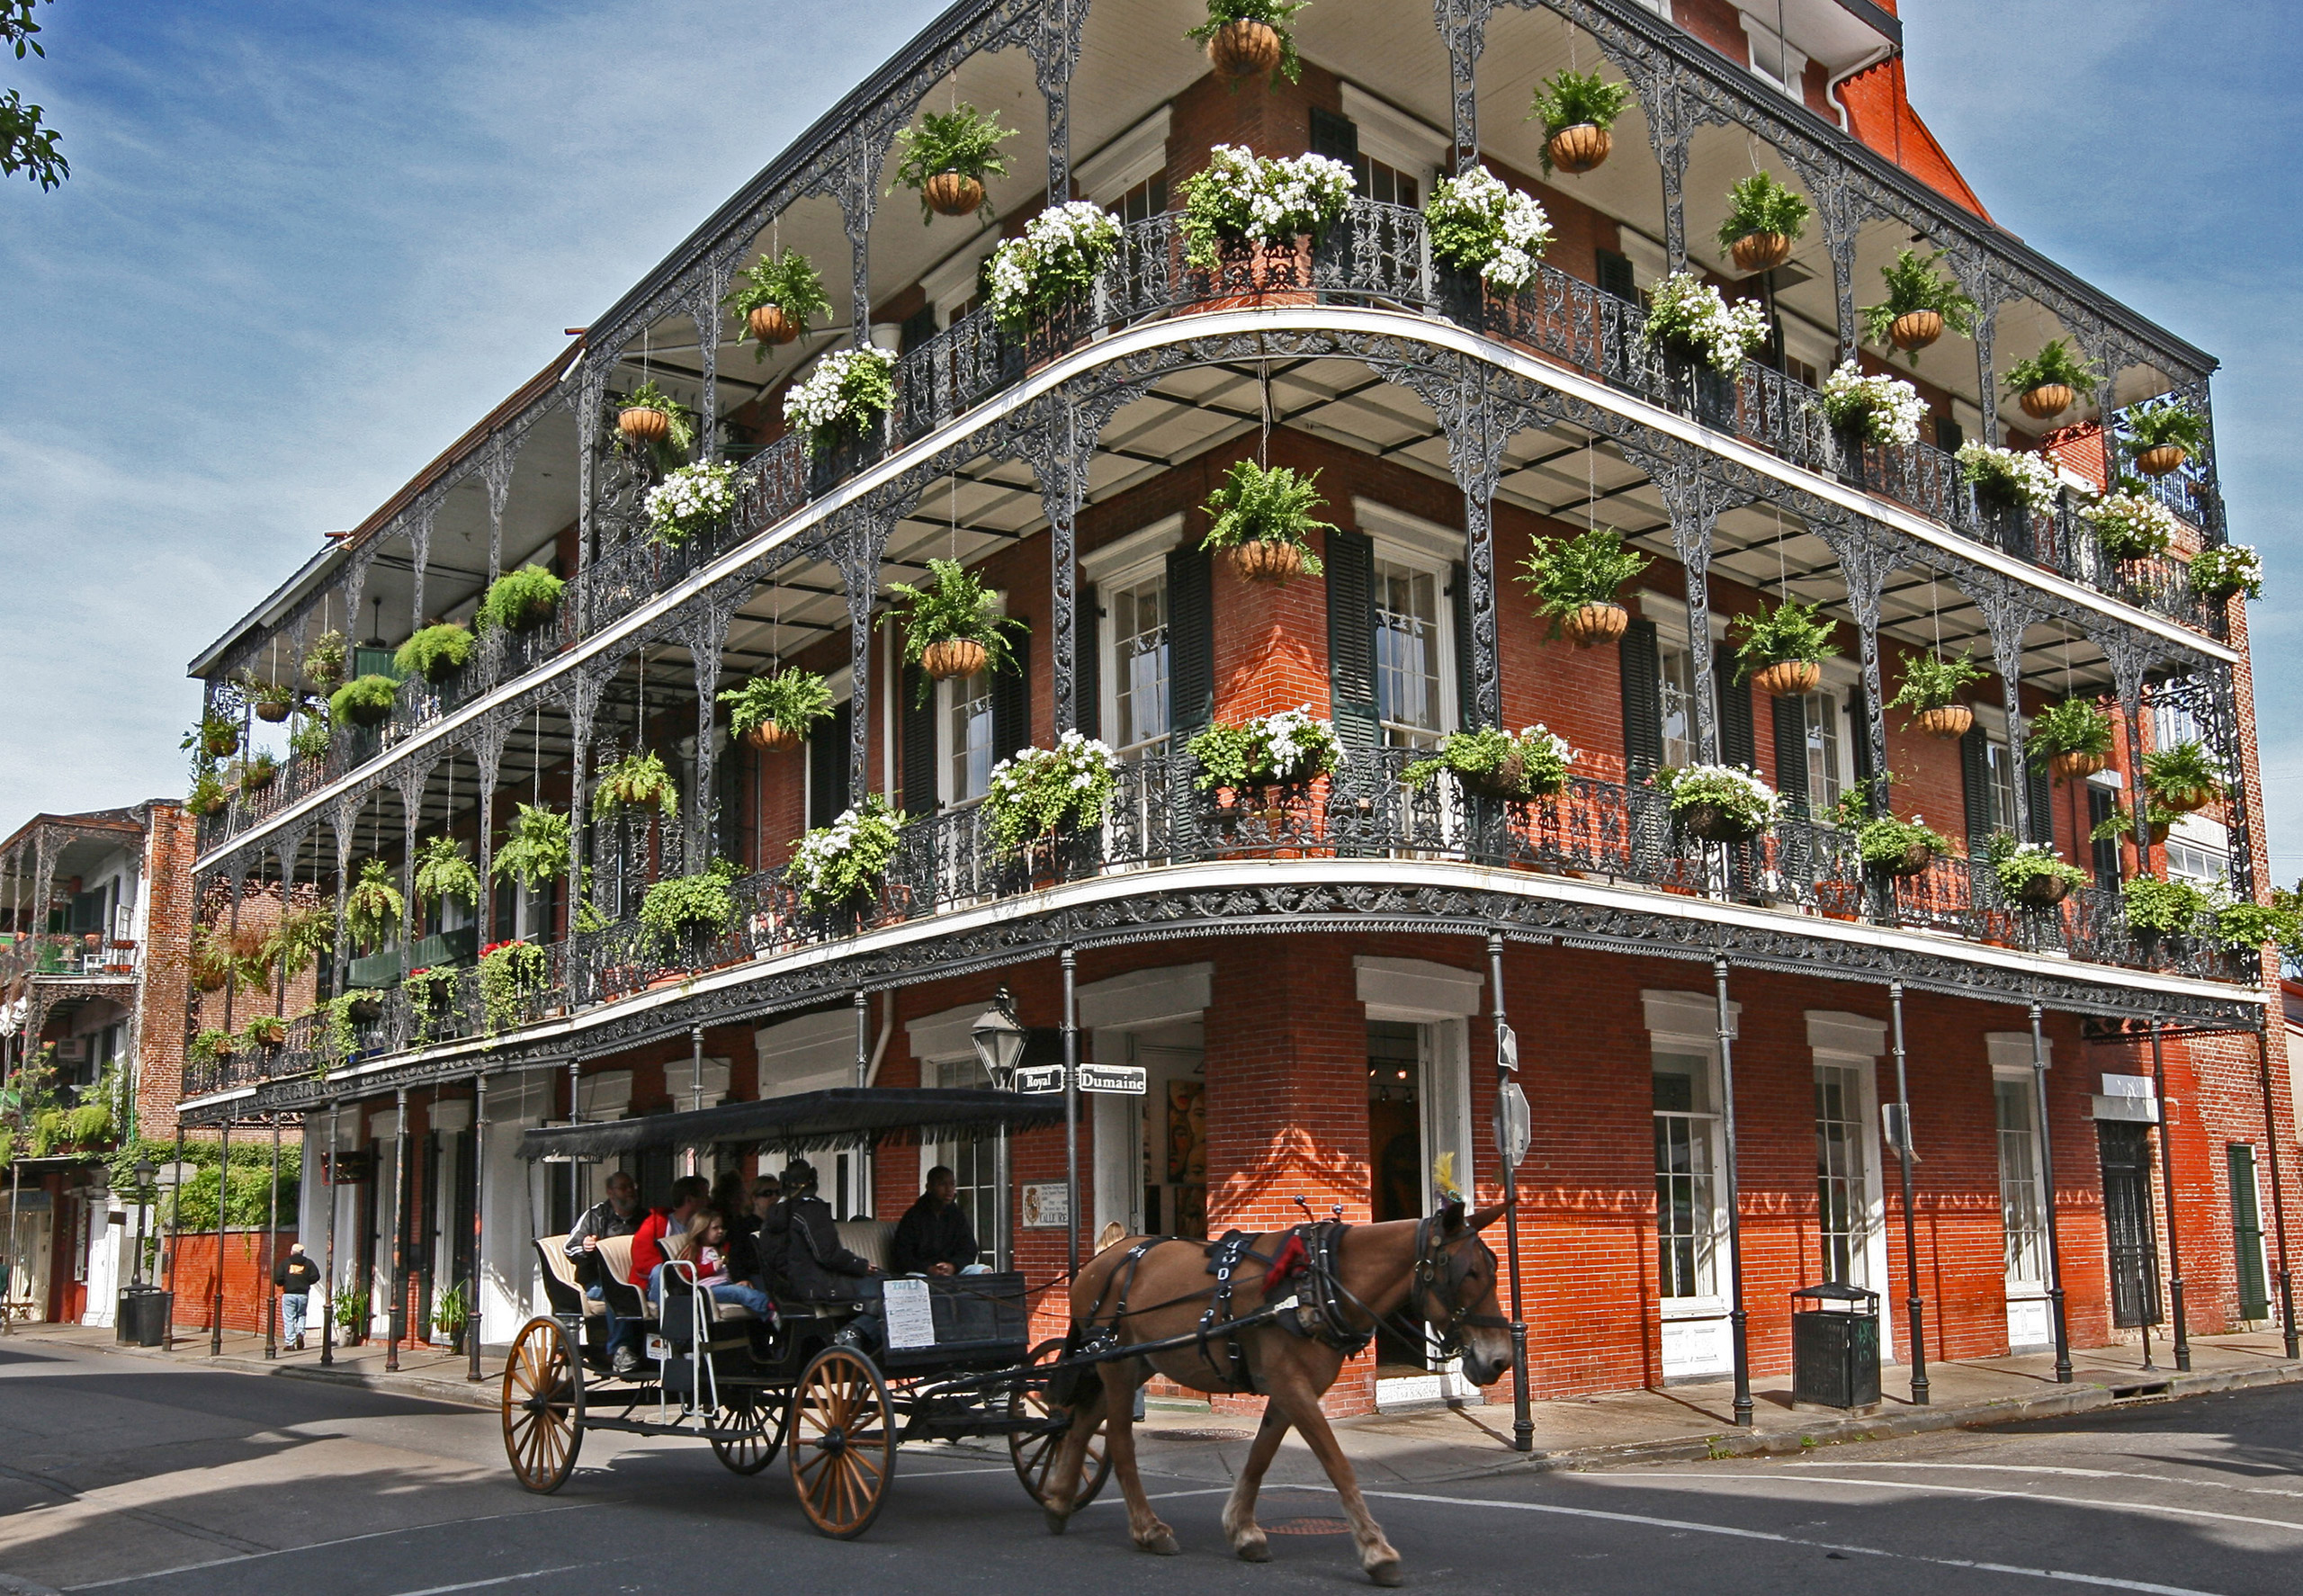 us_new_orleans_straatbeeld_b